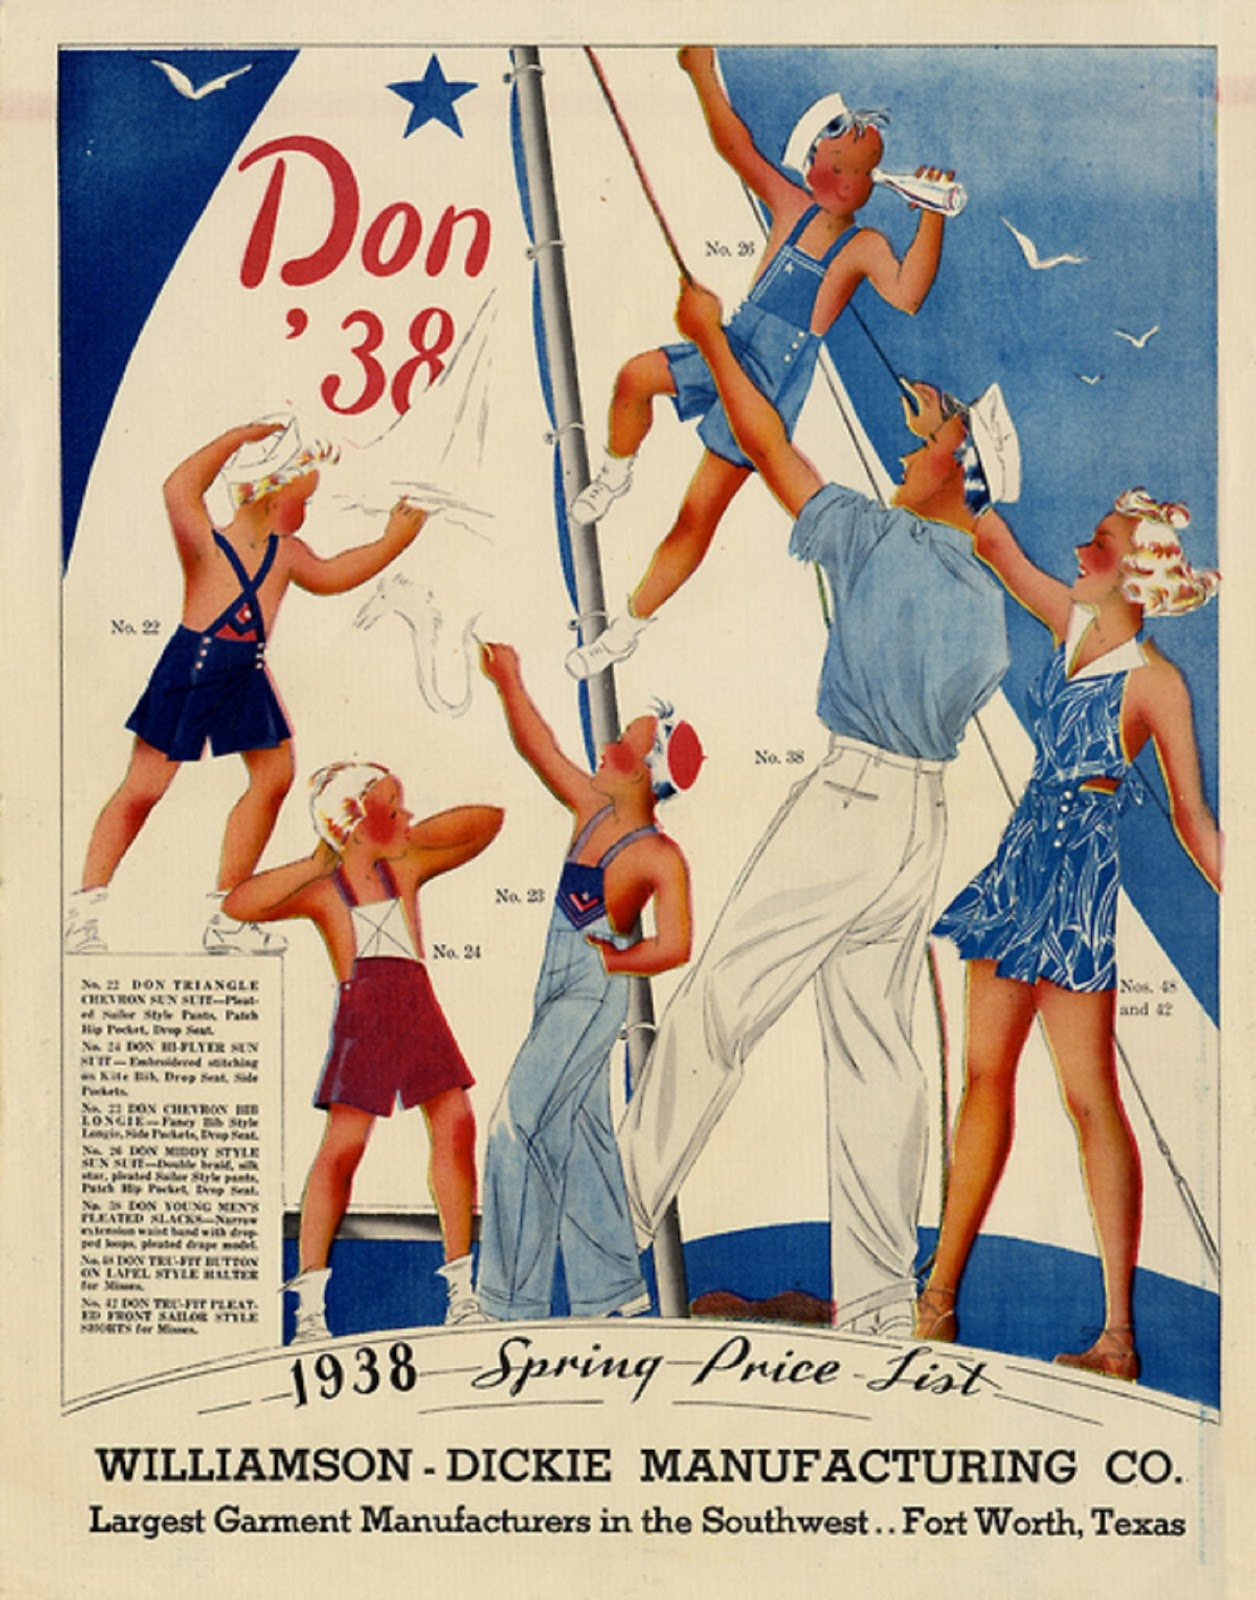 Sailor fashions for the whole family,1938